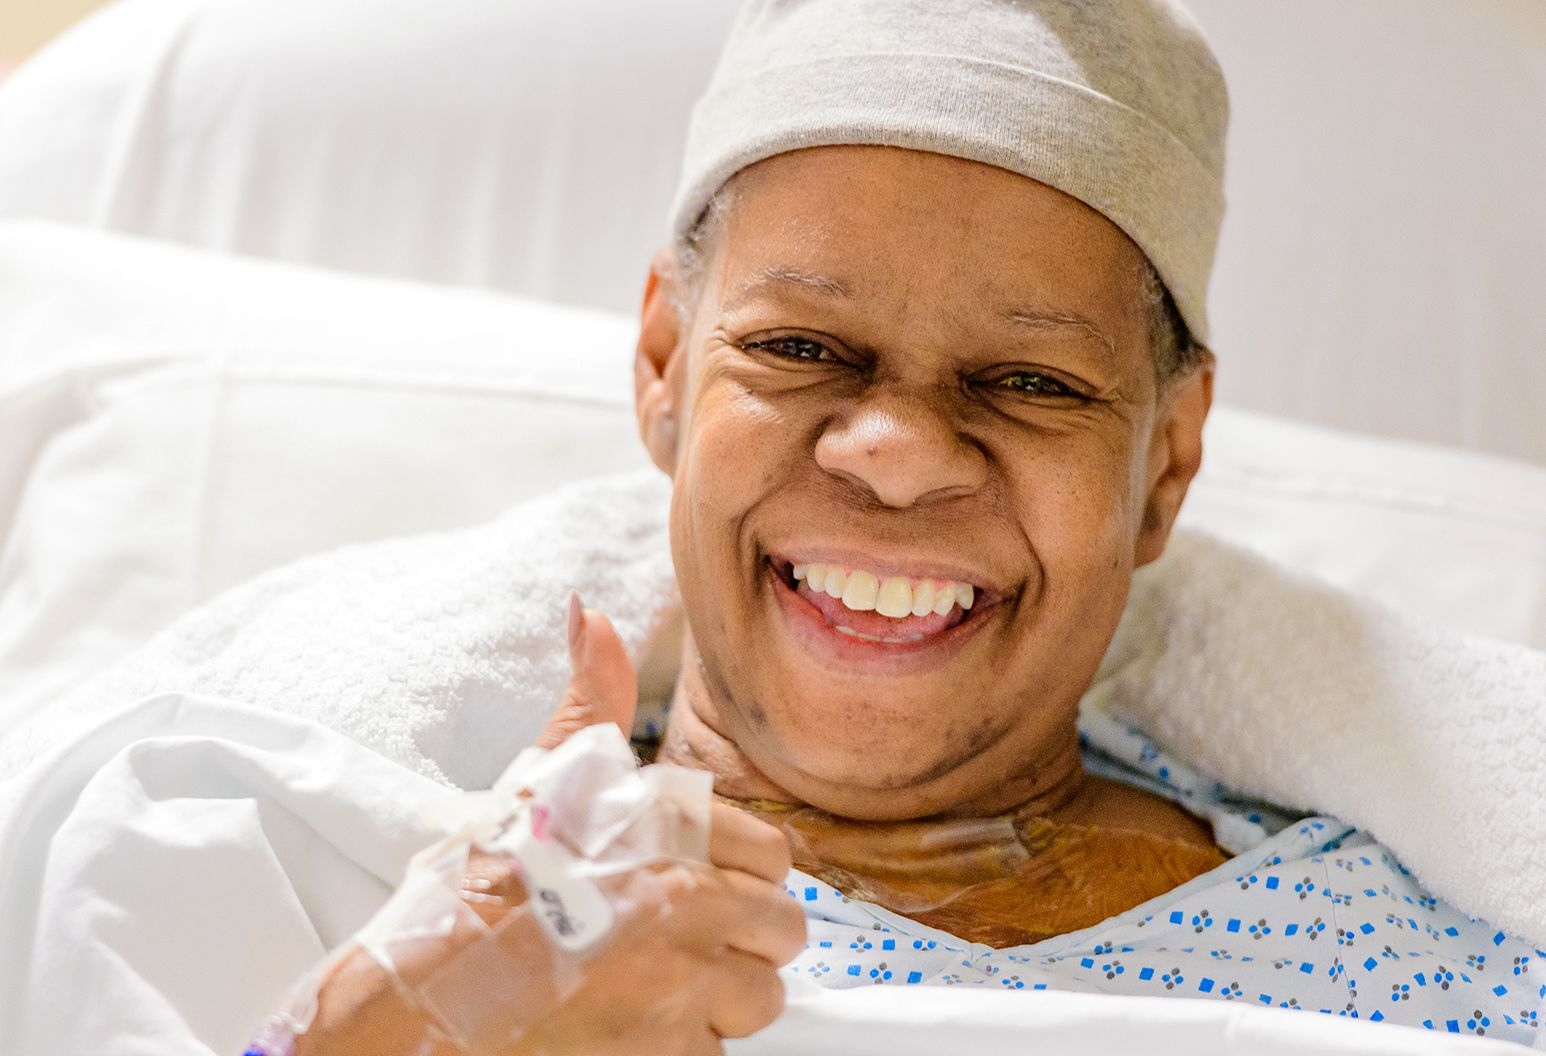 Woman in her 70s smiles and gives a thumbs up from her hospital bed, after receiving Long Island's first heart transplant.